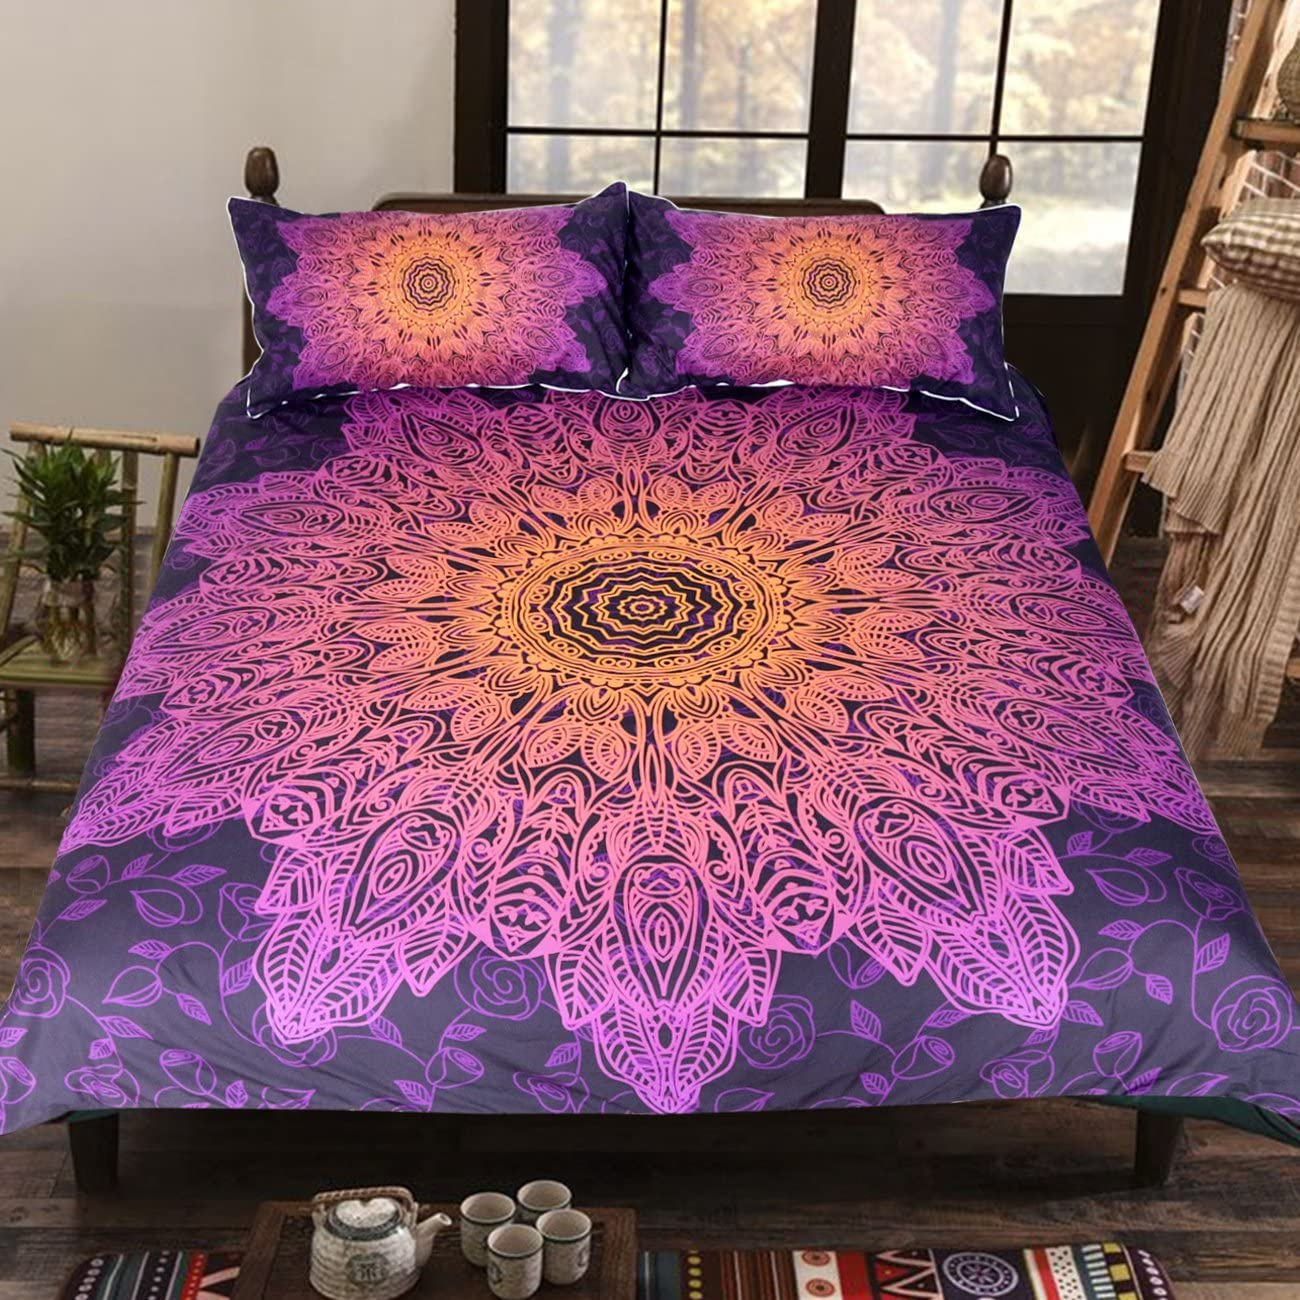 Sleepwish India Inspired Bedding 3 Piece Pink Floral Duvet Cover Teen Purple Bedding Boho Chic Woman Bed Spread (Full)